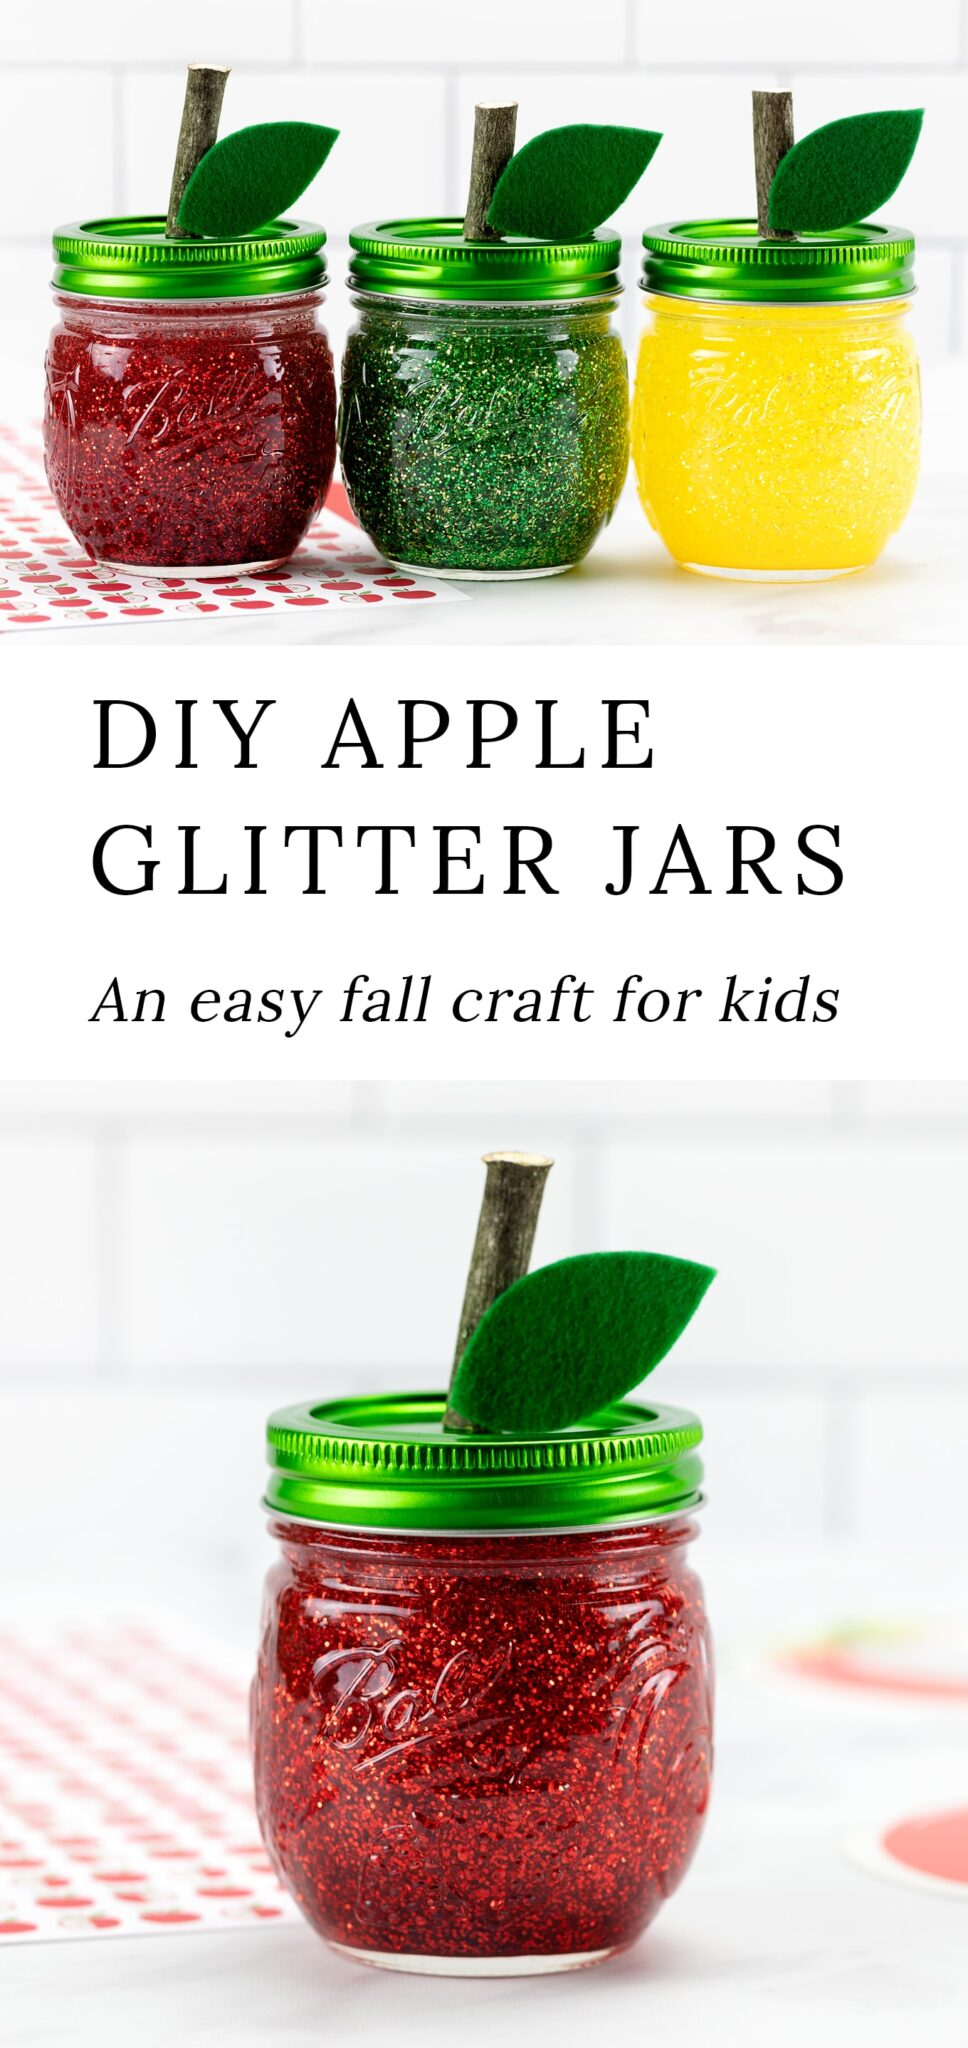 Making apple glitter jars to welcome September is an easy and fun mason jar project for kids! In this post, learn how to make red, yellow, and green apple-shaped glitter jars that are perfect for calming back-to-school jitters. #glitterjars #appleglitterjars #fallcrafts via @firefliesandmudpies